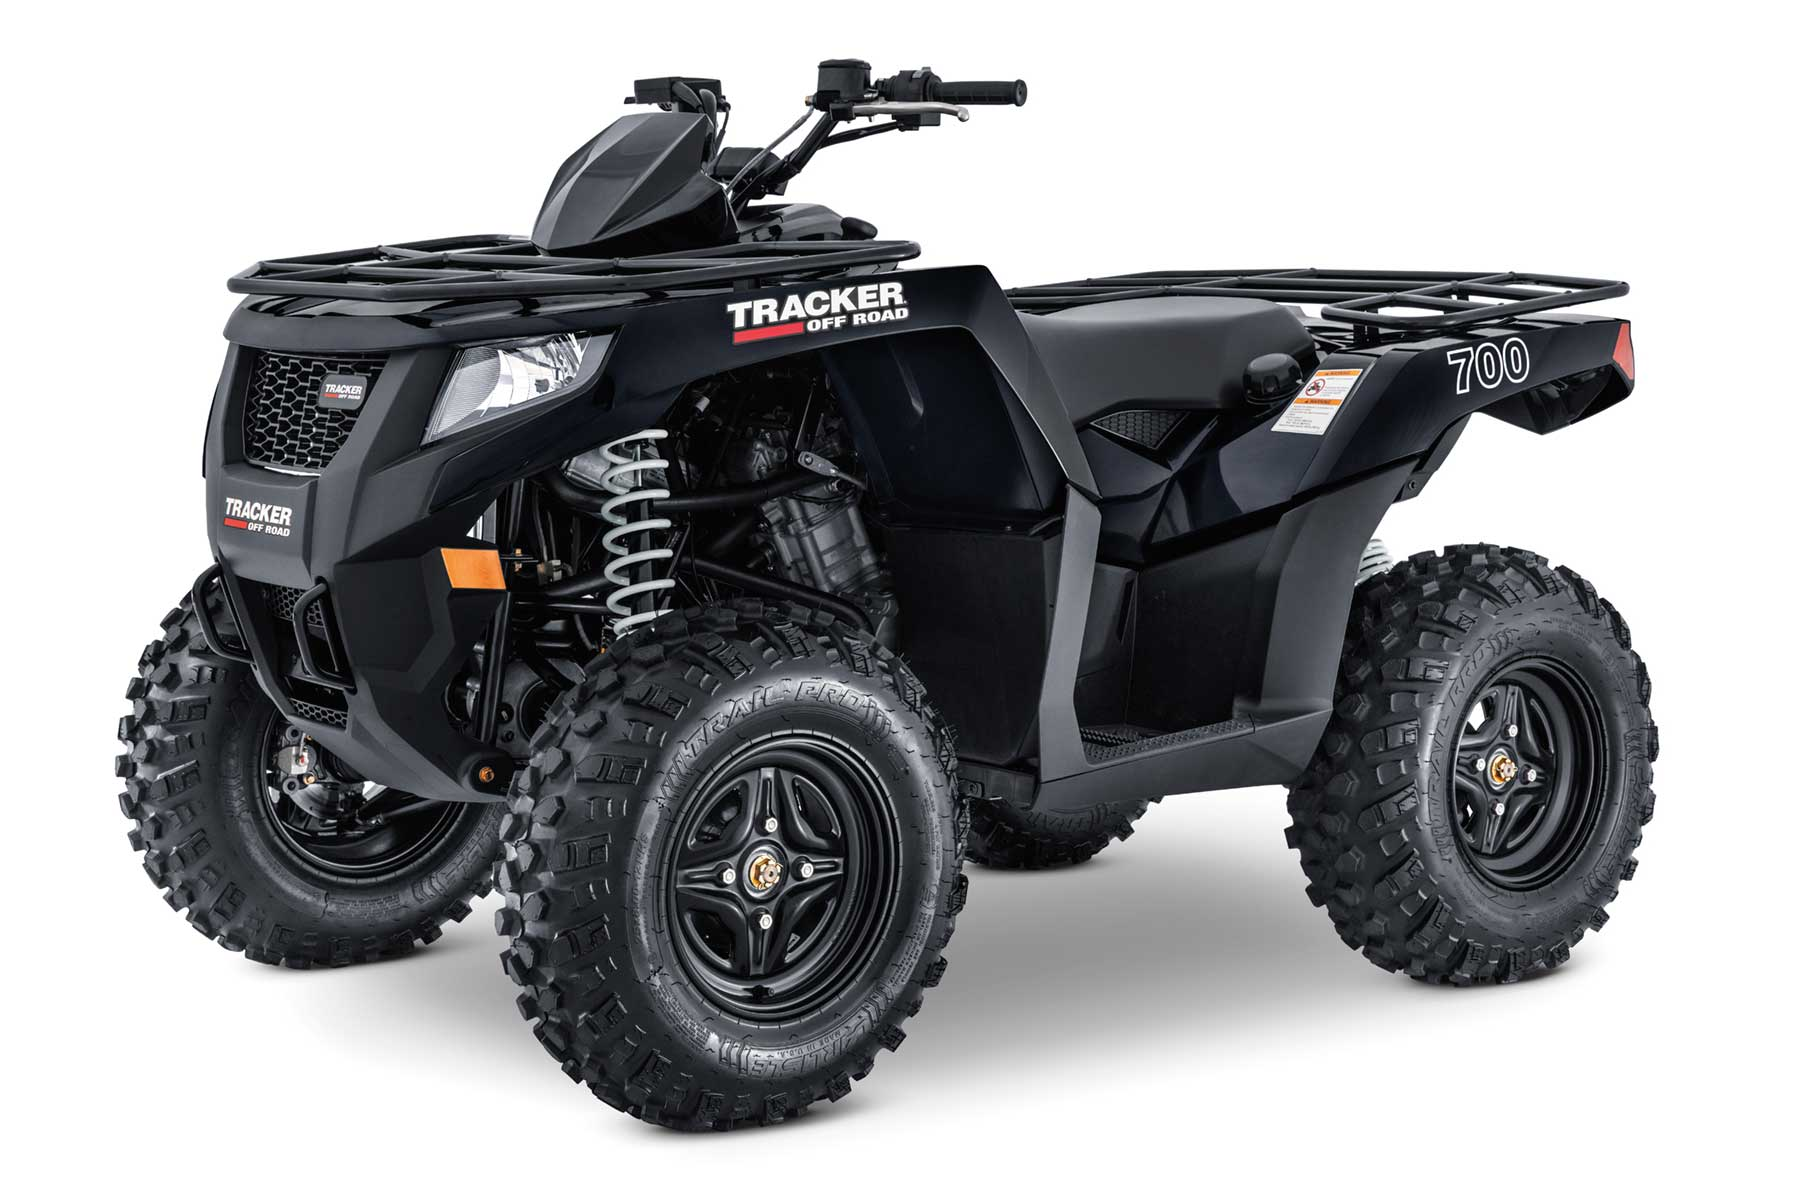 Tracker Off road 700